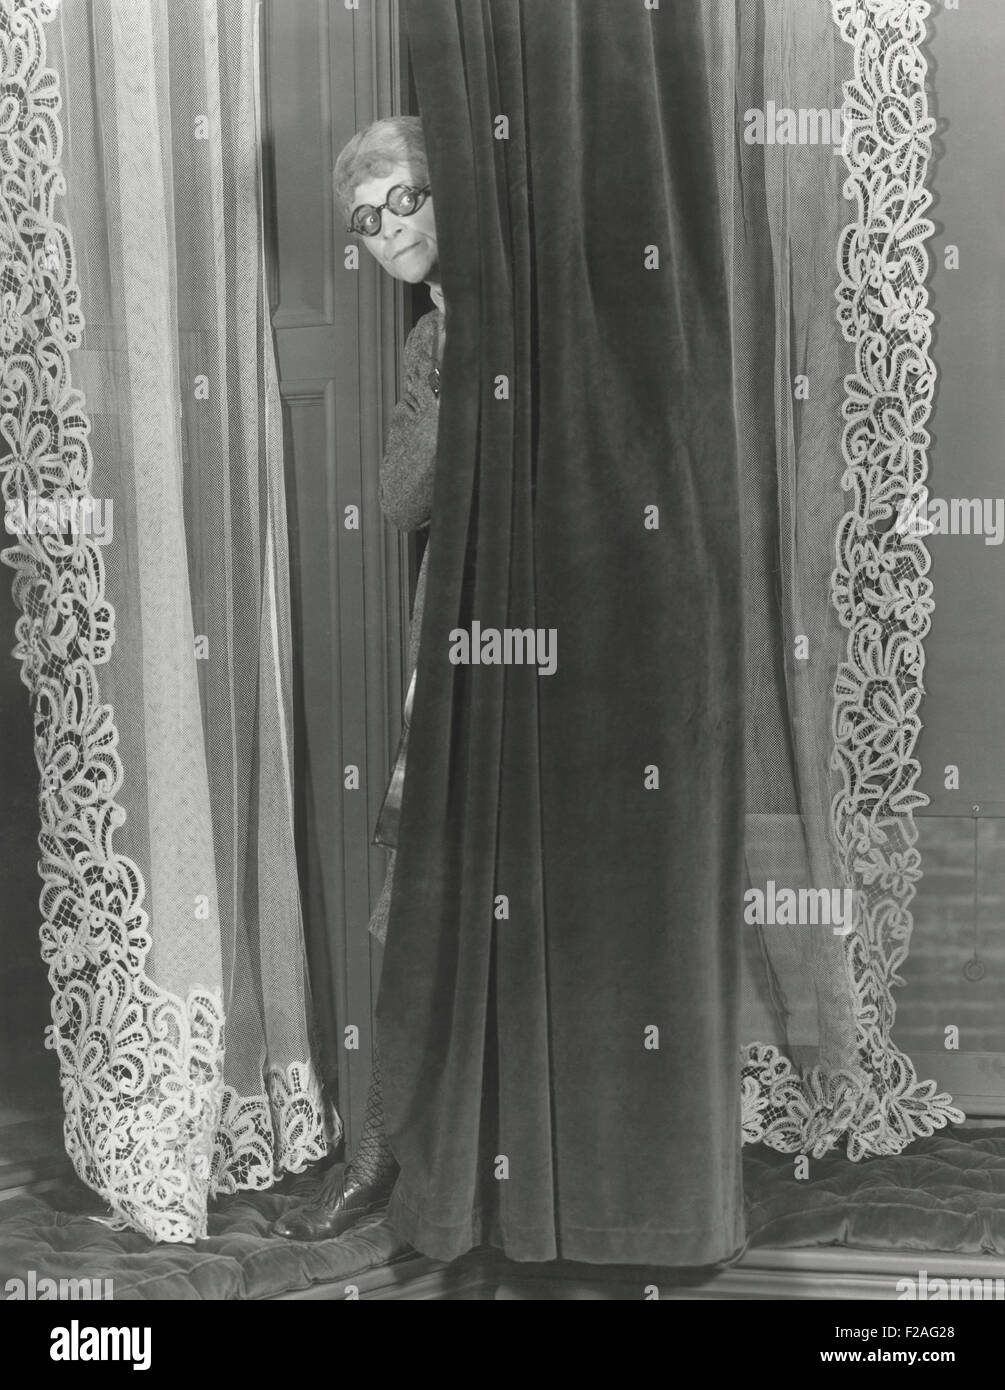 Woman eavesdropping from behind curtain (OLVI008_OU276_F) - Stock Image